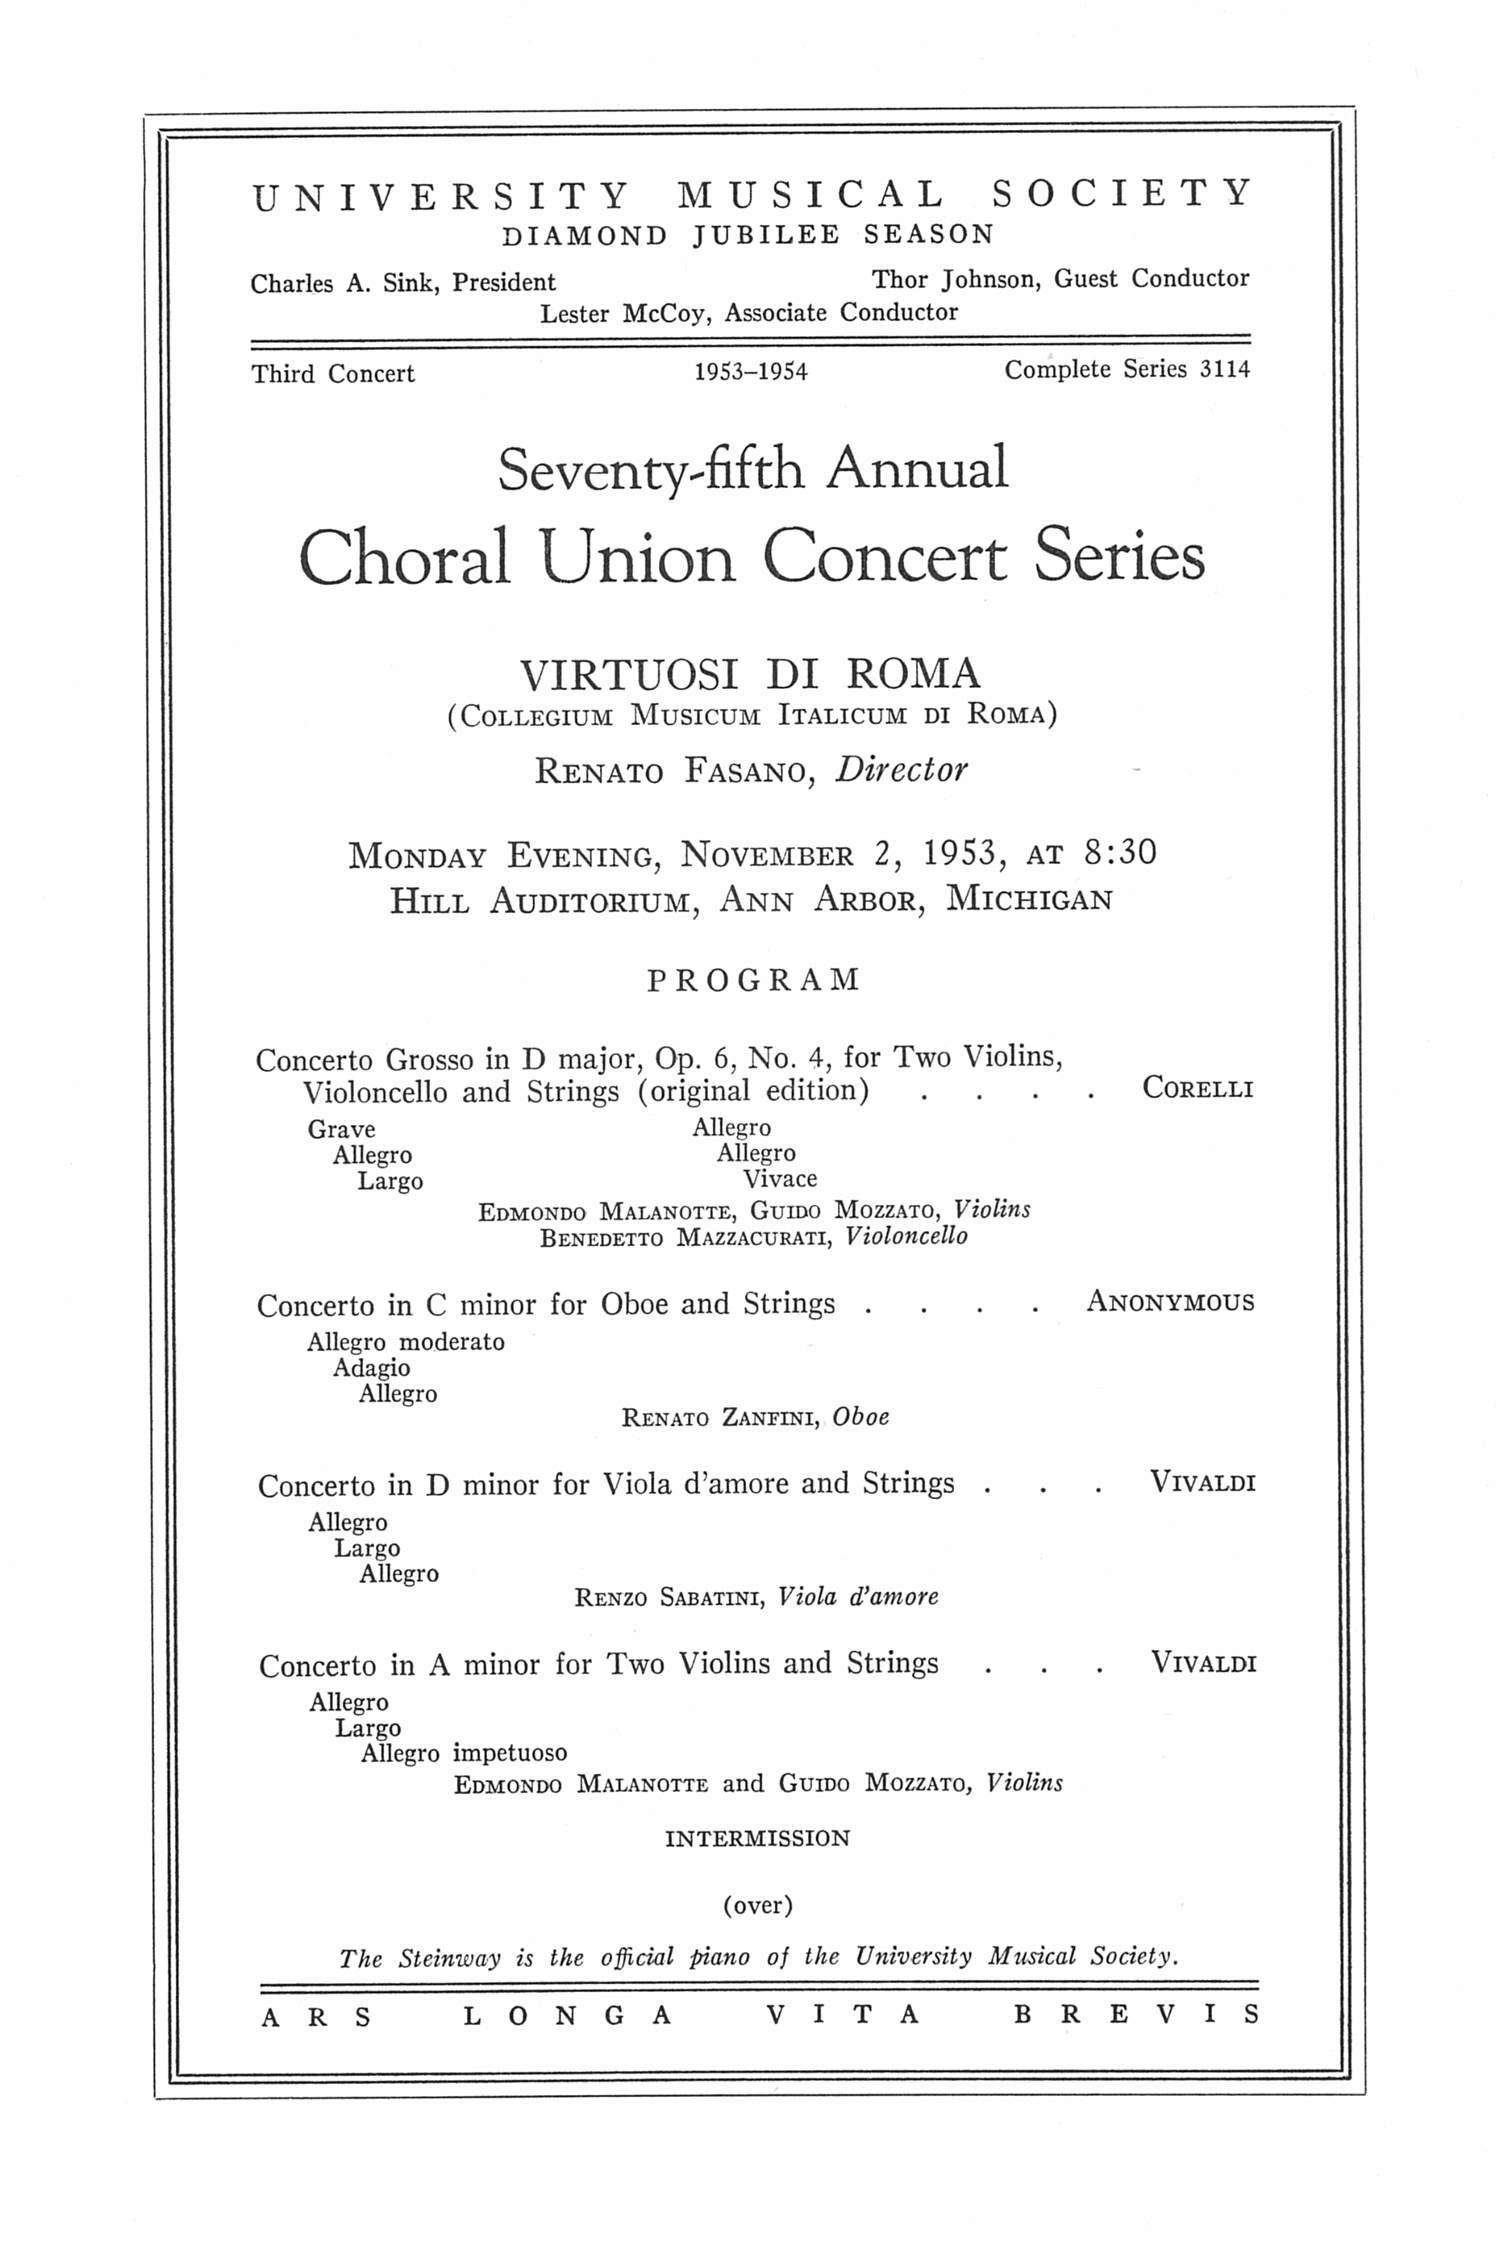 UMS Concert Program, November 2, 1953: Seventy-fifth Annual Choral Union Concert Series -- Renato Fasano image